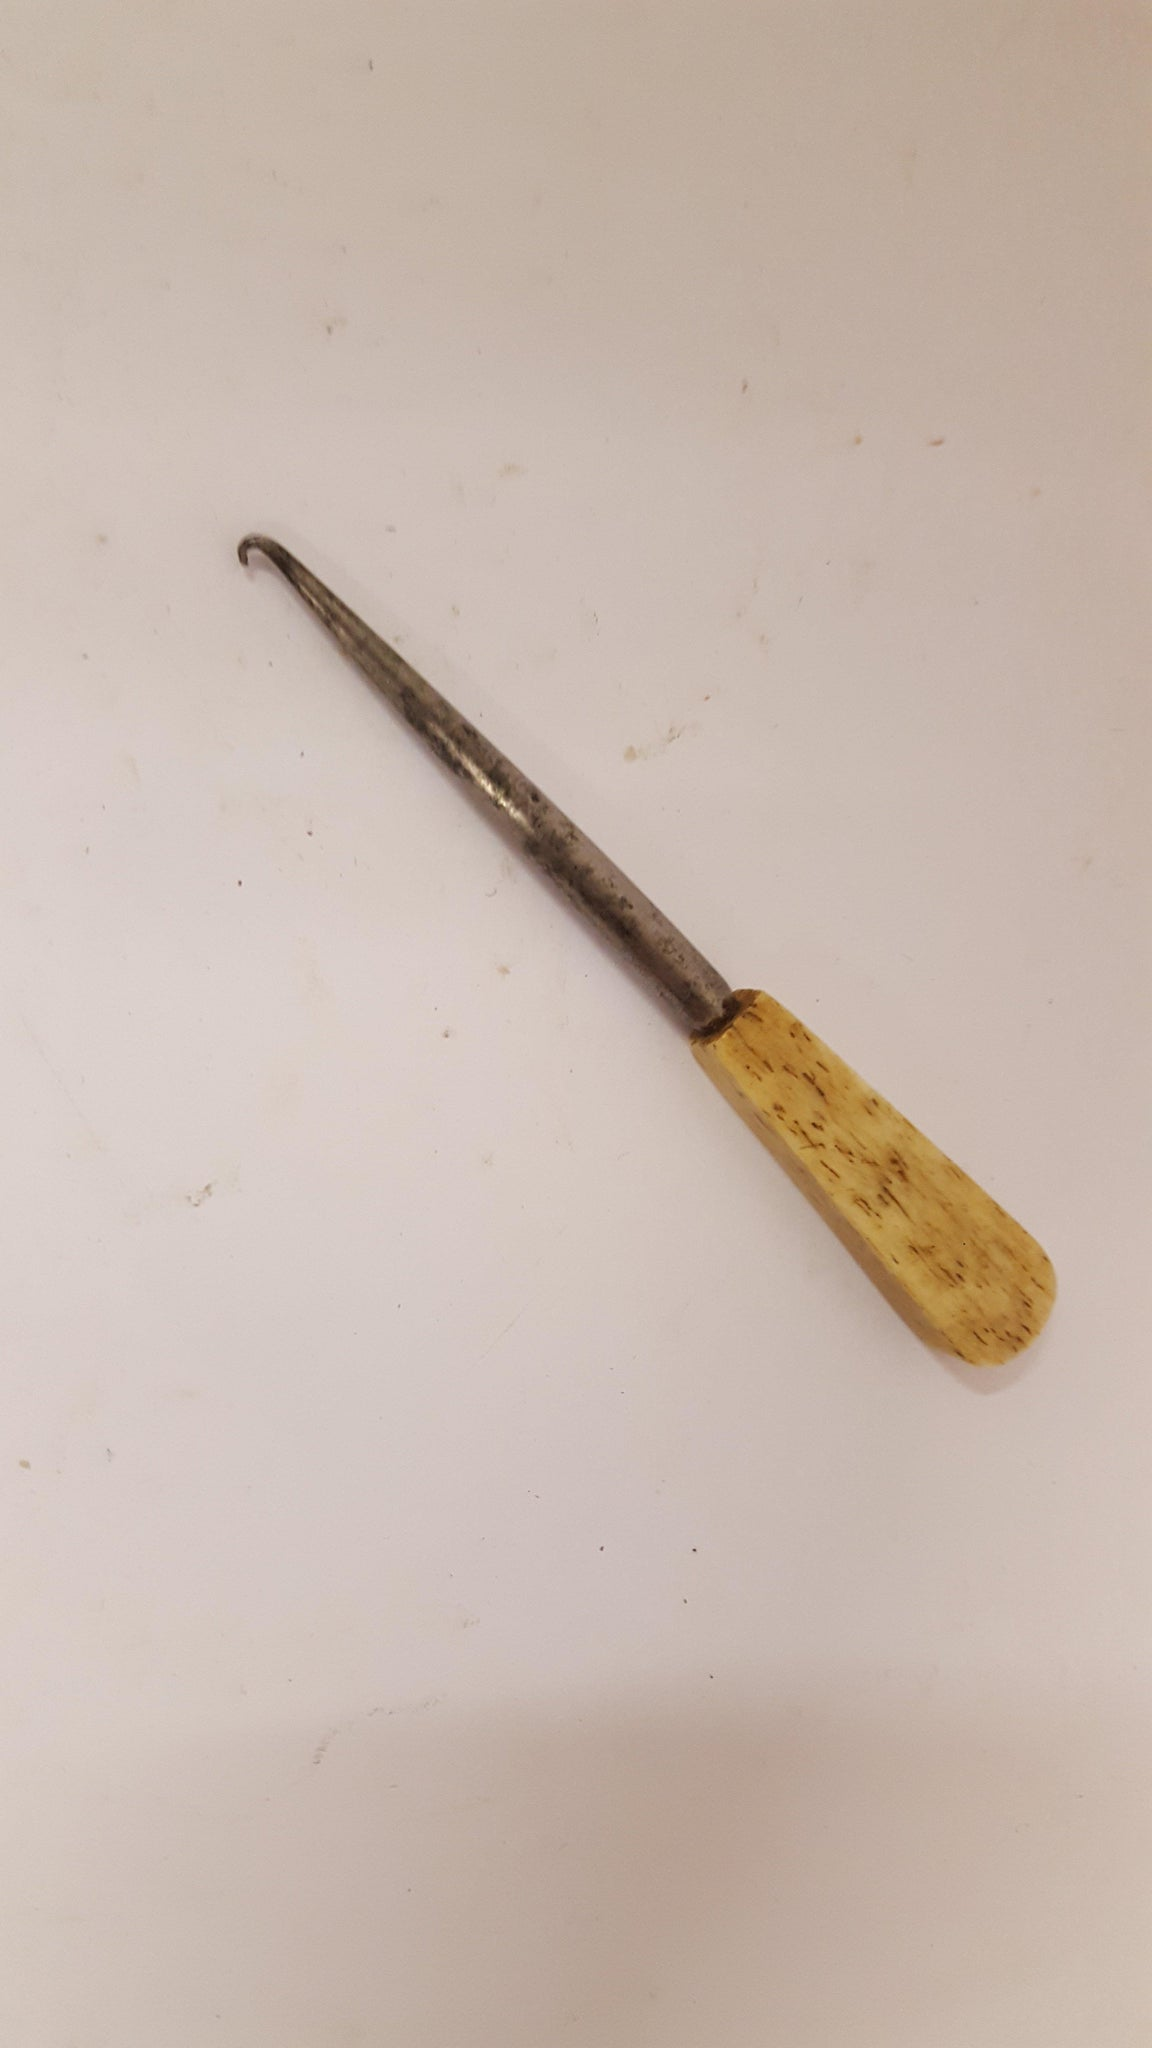 Bovine Bone Haberdashery Tool 8935-The Vintage Tool Shop